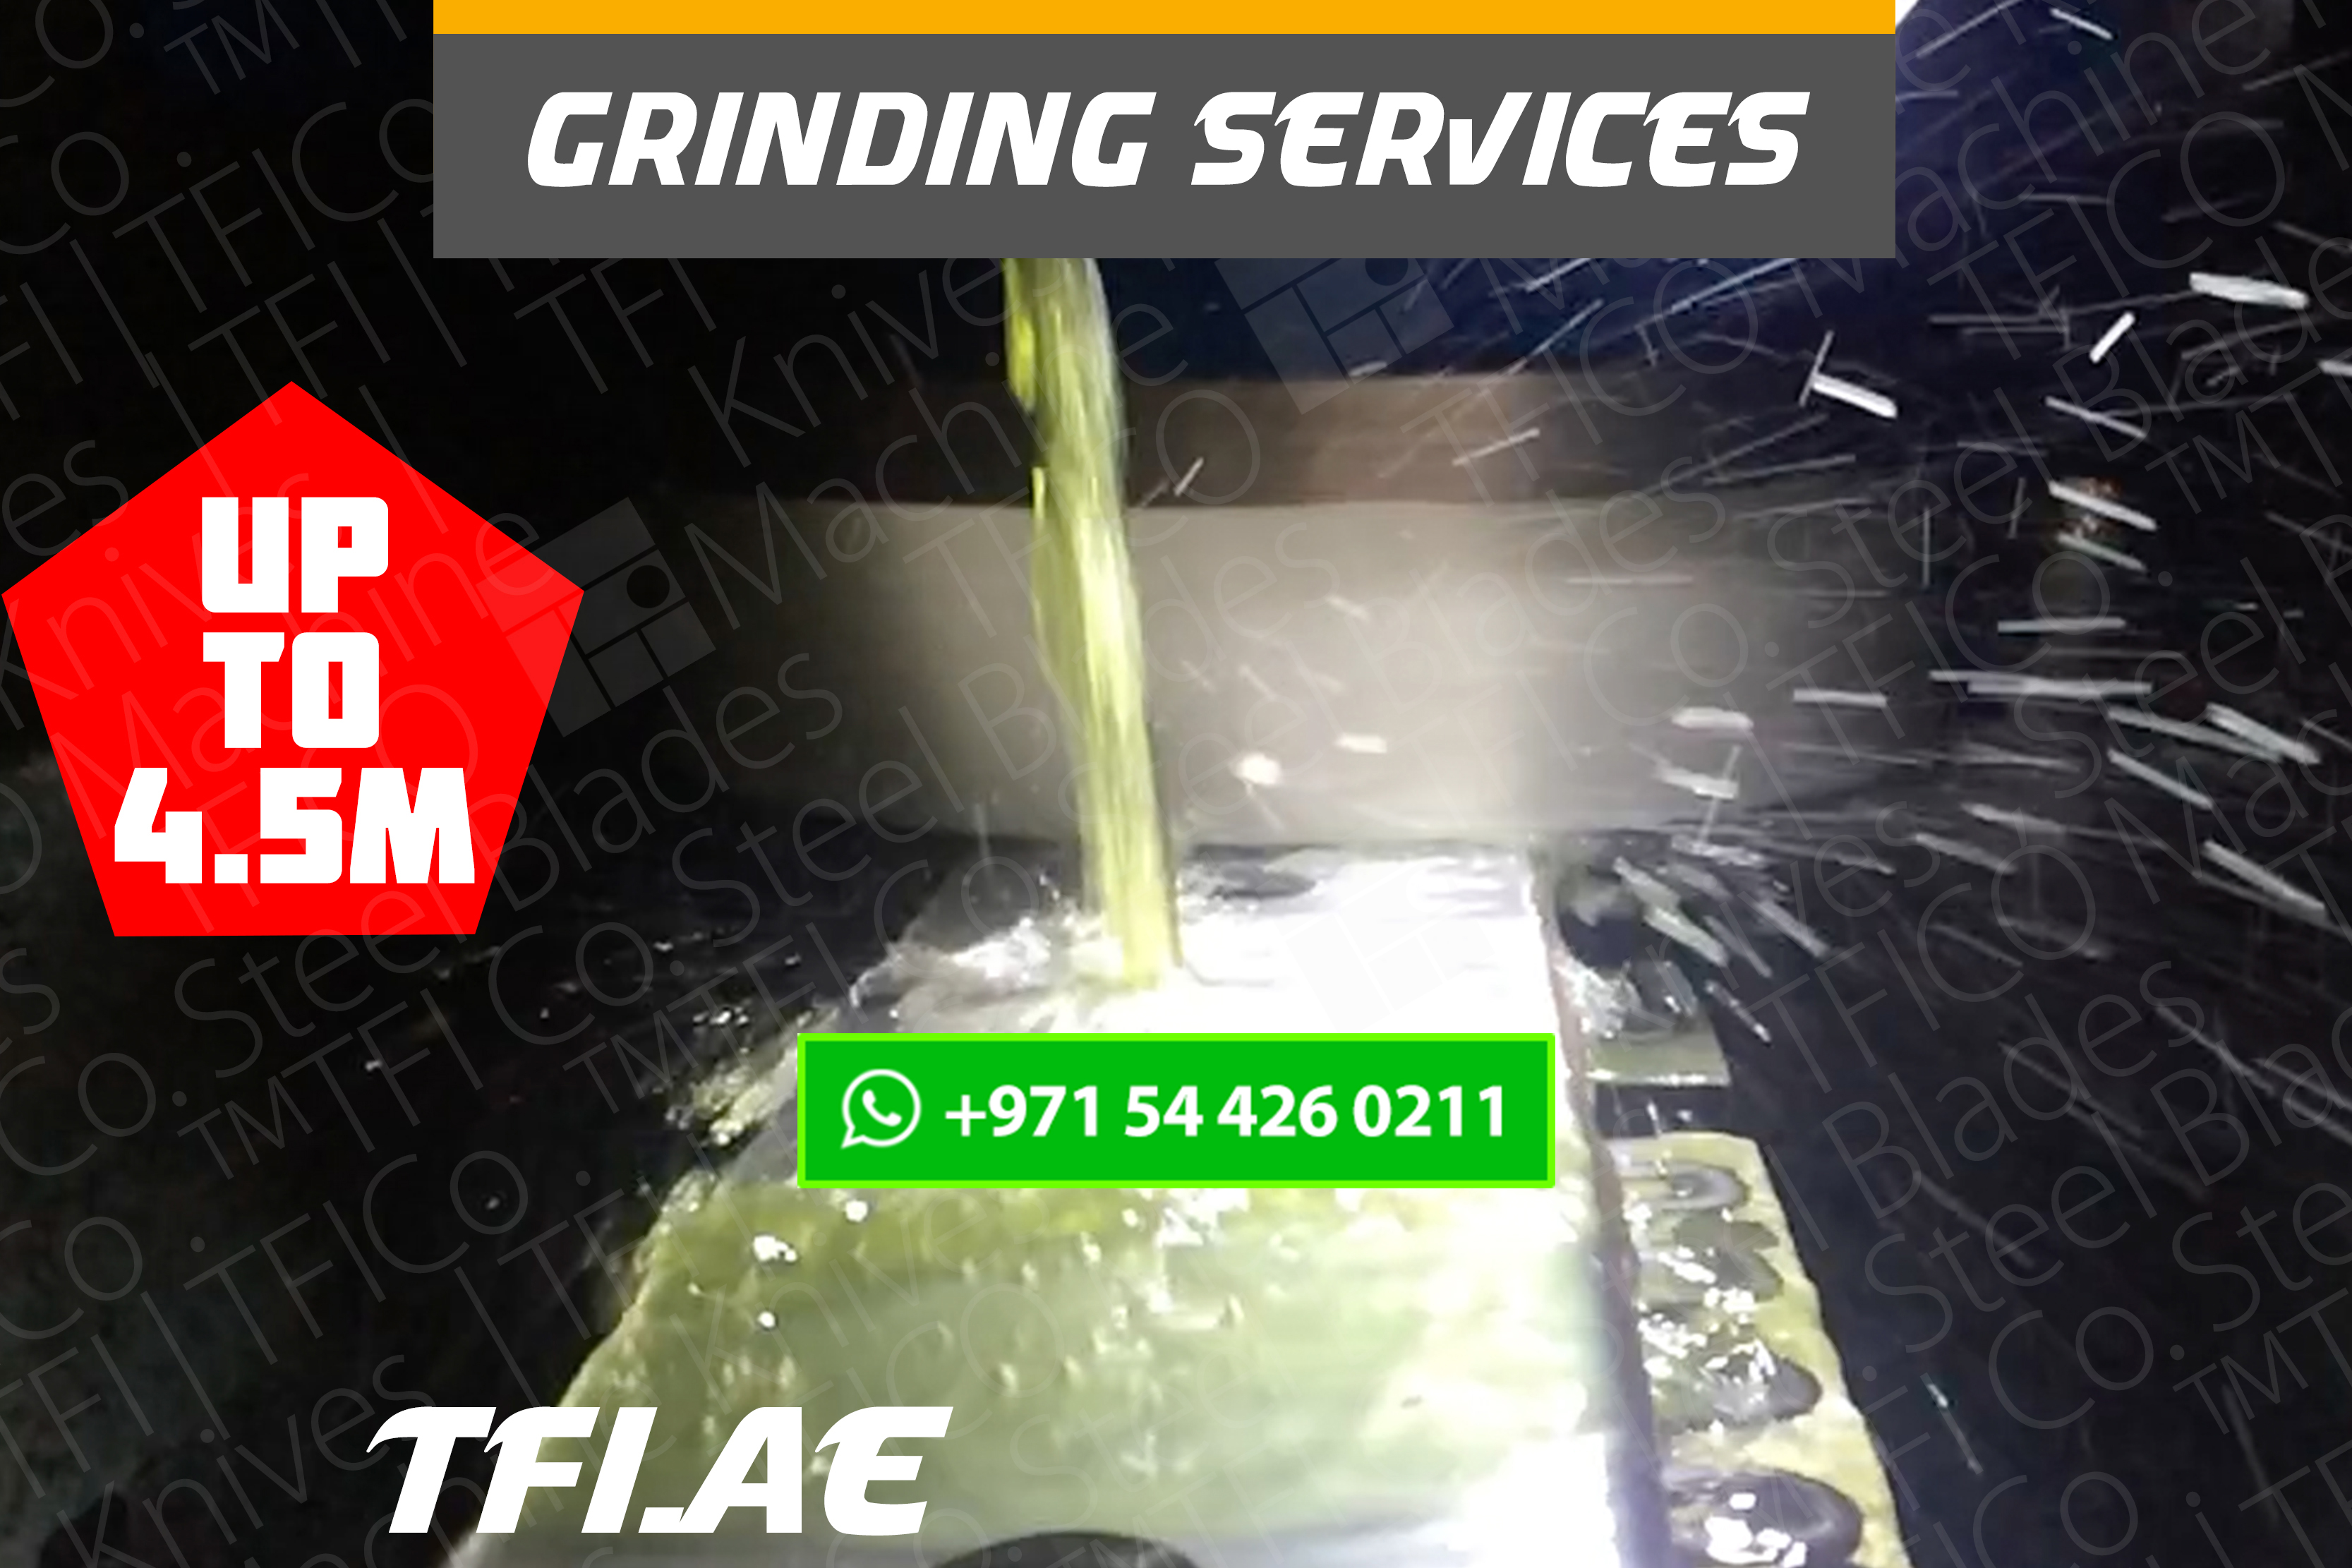 grinding, sharpening, services, tfico, machine knives, steel blades, uae, dubai, qatar, tungsten, shear blade, long , shine cut